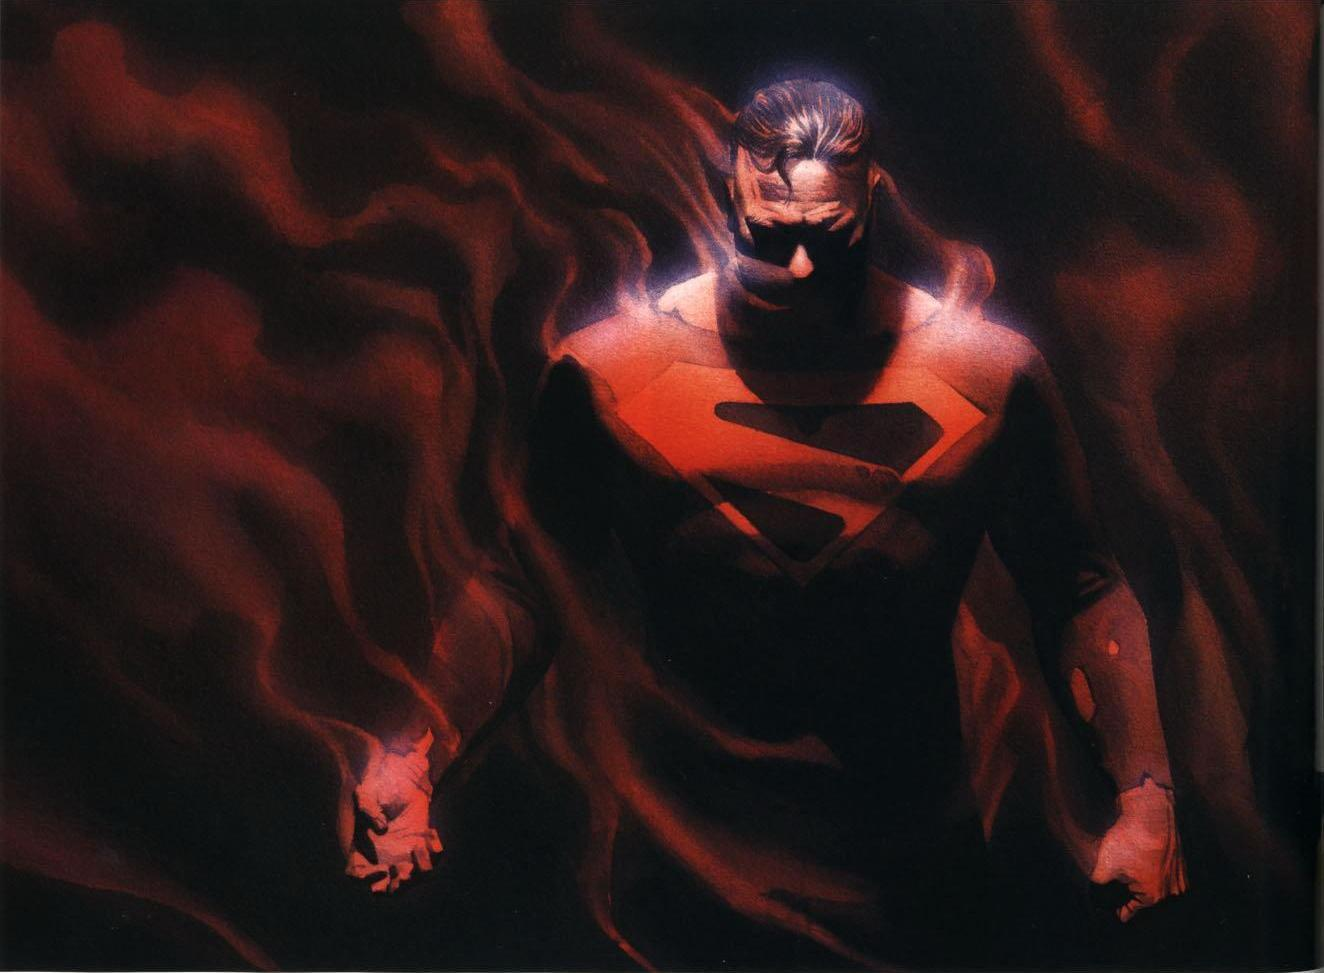 superman wallpaper and background image | 1324x973 | id:57229